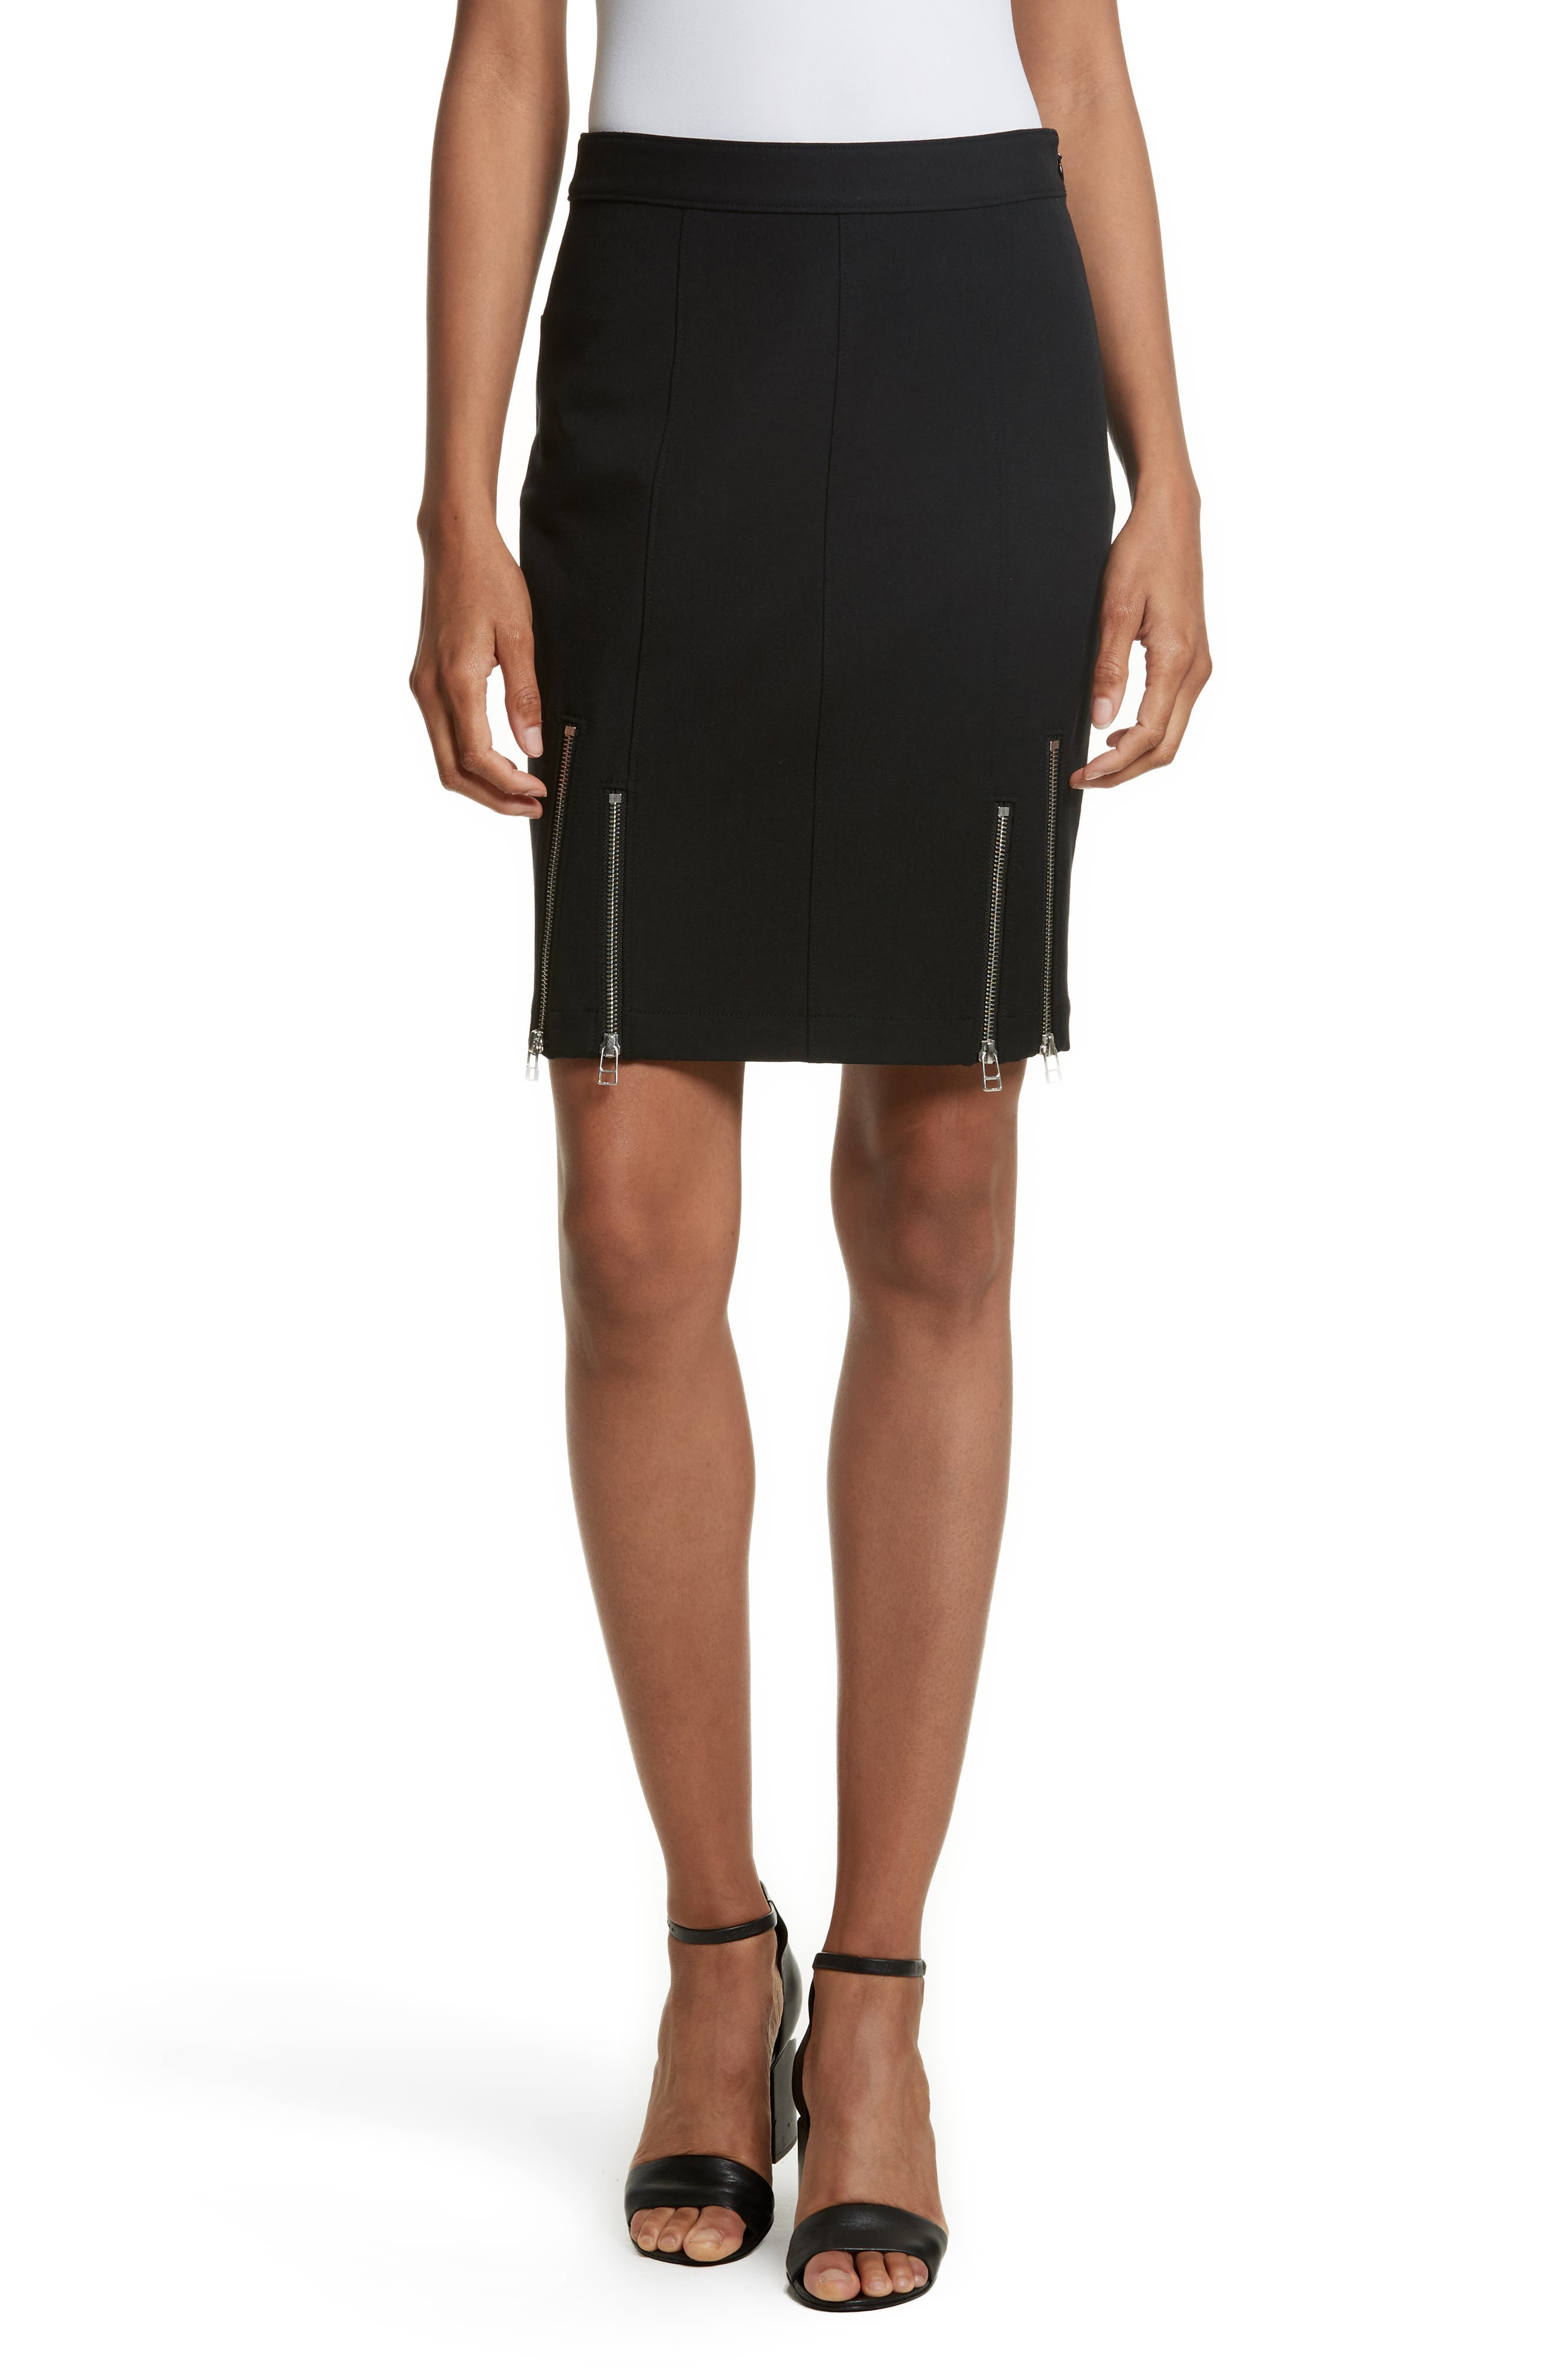 T by Alexander Wang Zip Detail Knit Pencil Skirt